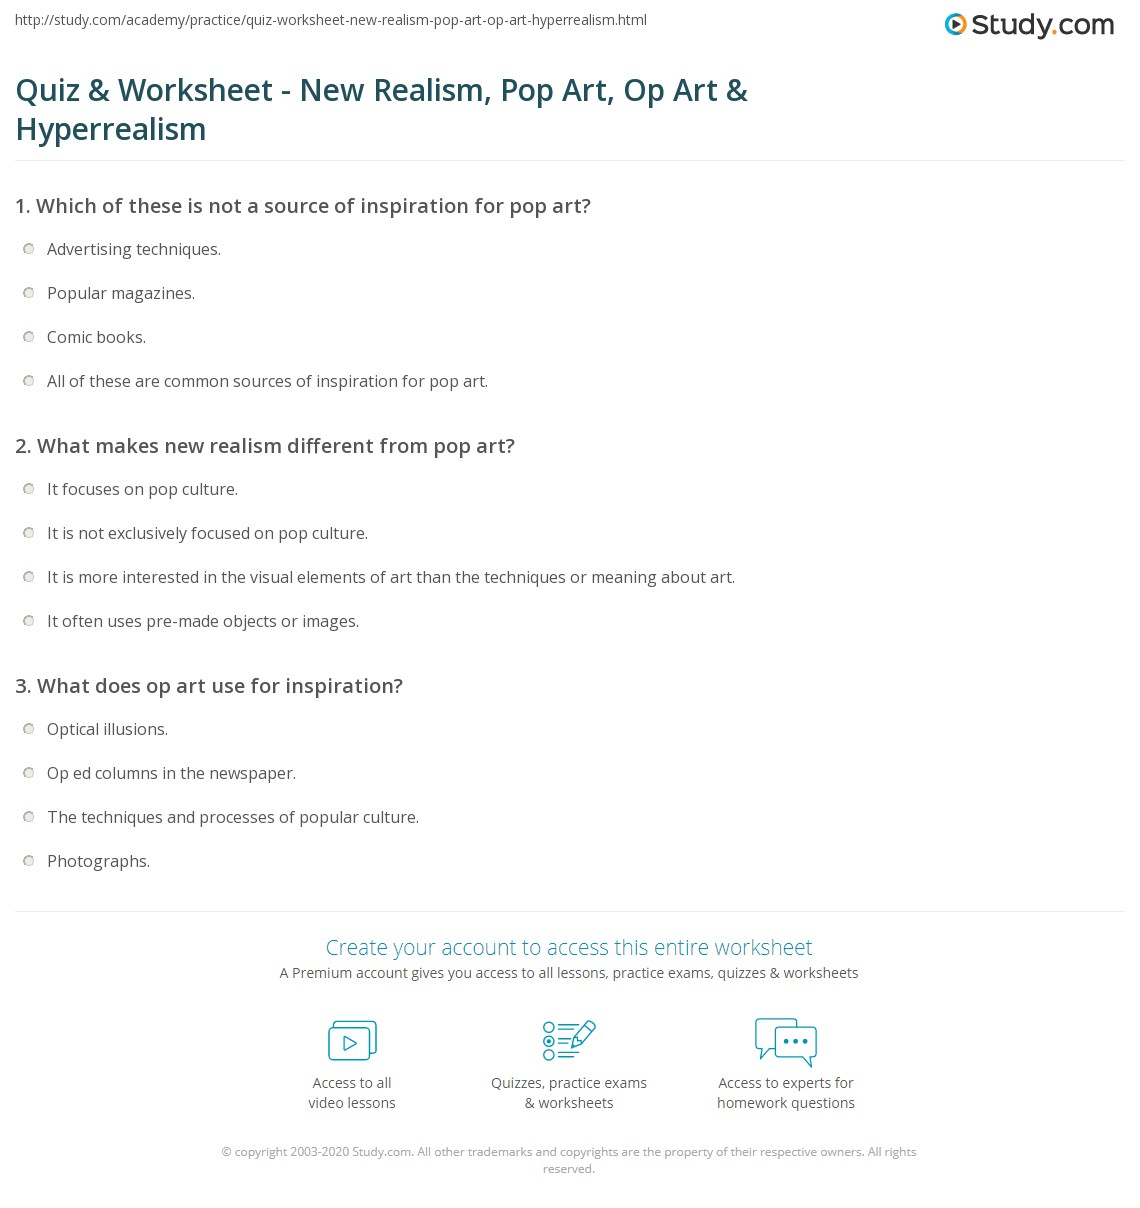 Printables Op Art Worksheet quiz worksheet new realism pop art op hyperrealism print worksheet